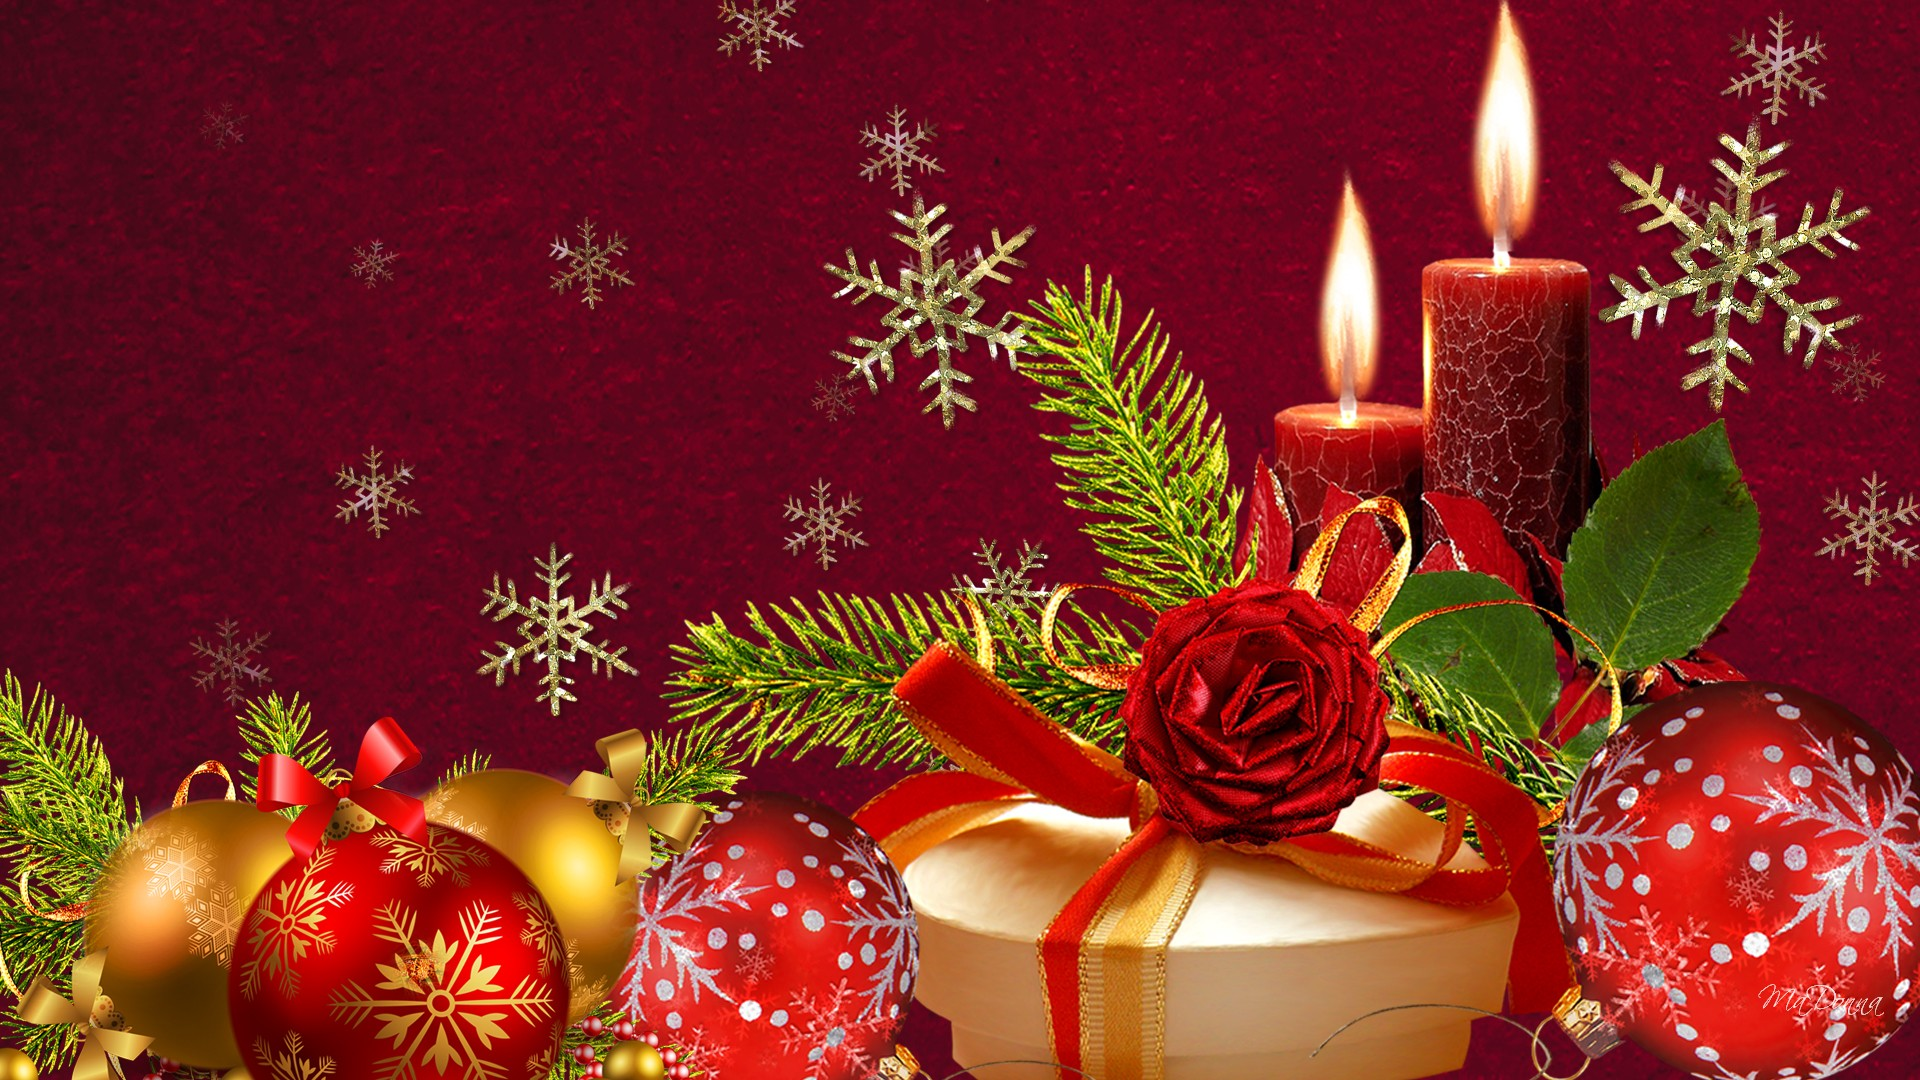 75] Christmas Background Picture on WallpaperSafari 1920x1080